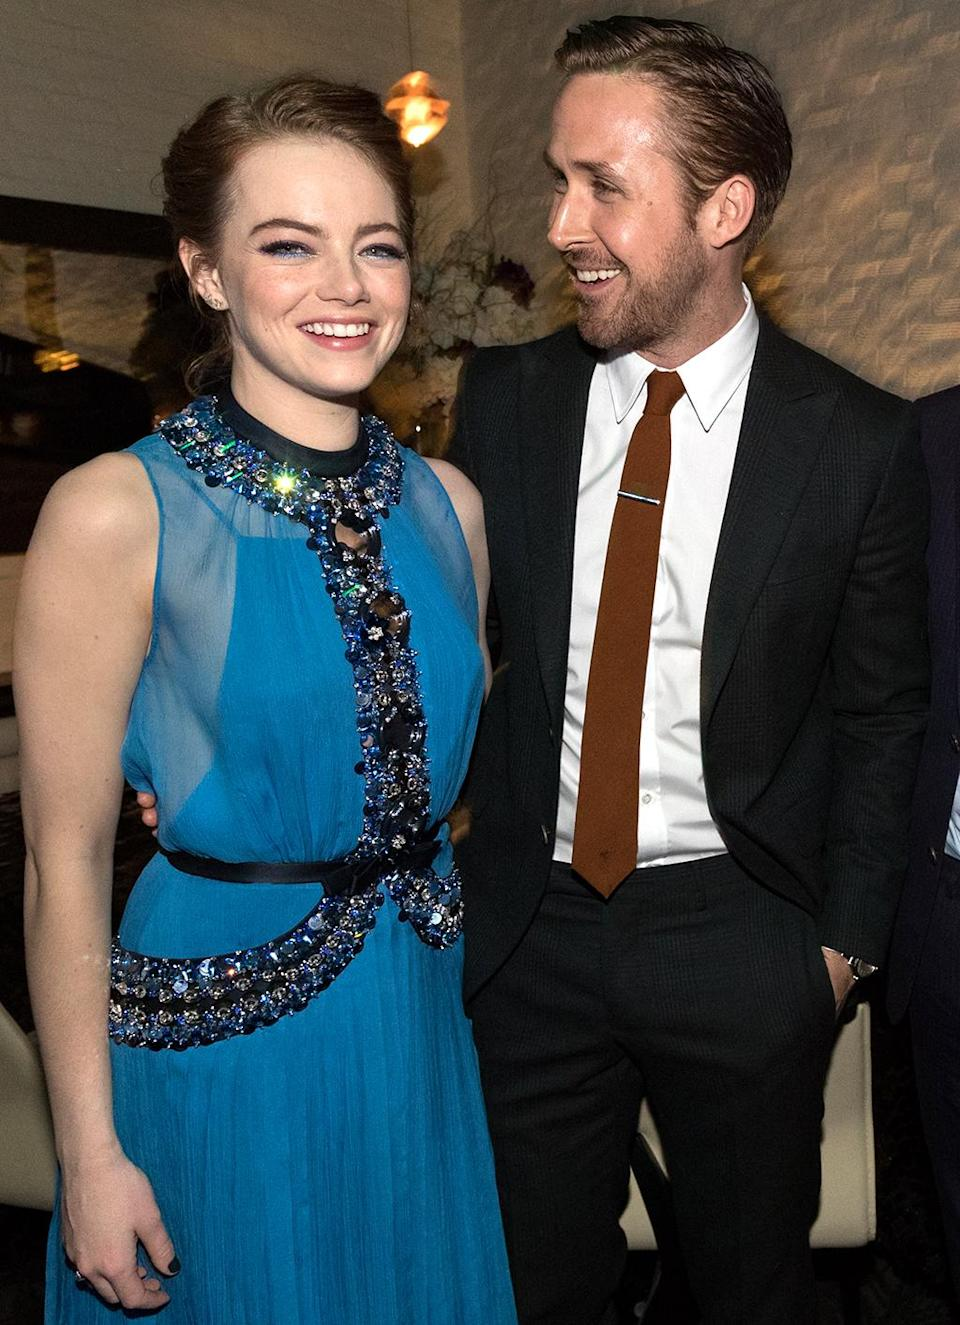 <p>The charming onscreen duo reunite for the romantic musical <em>La La Land,</em> opening in limited release this weekend before expanding Dec. 16. (Photo: Christopher Polk/Getty Images) </p>